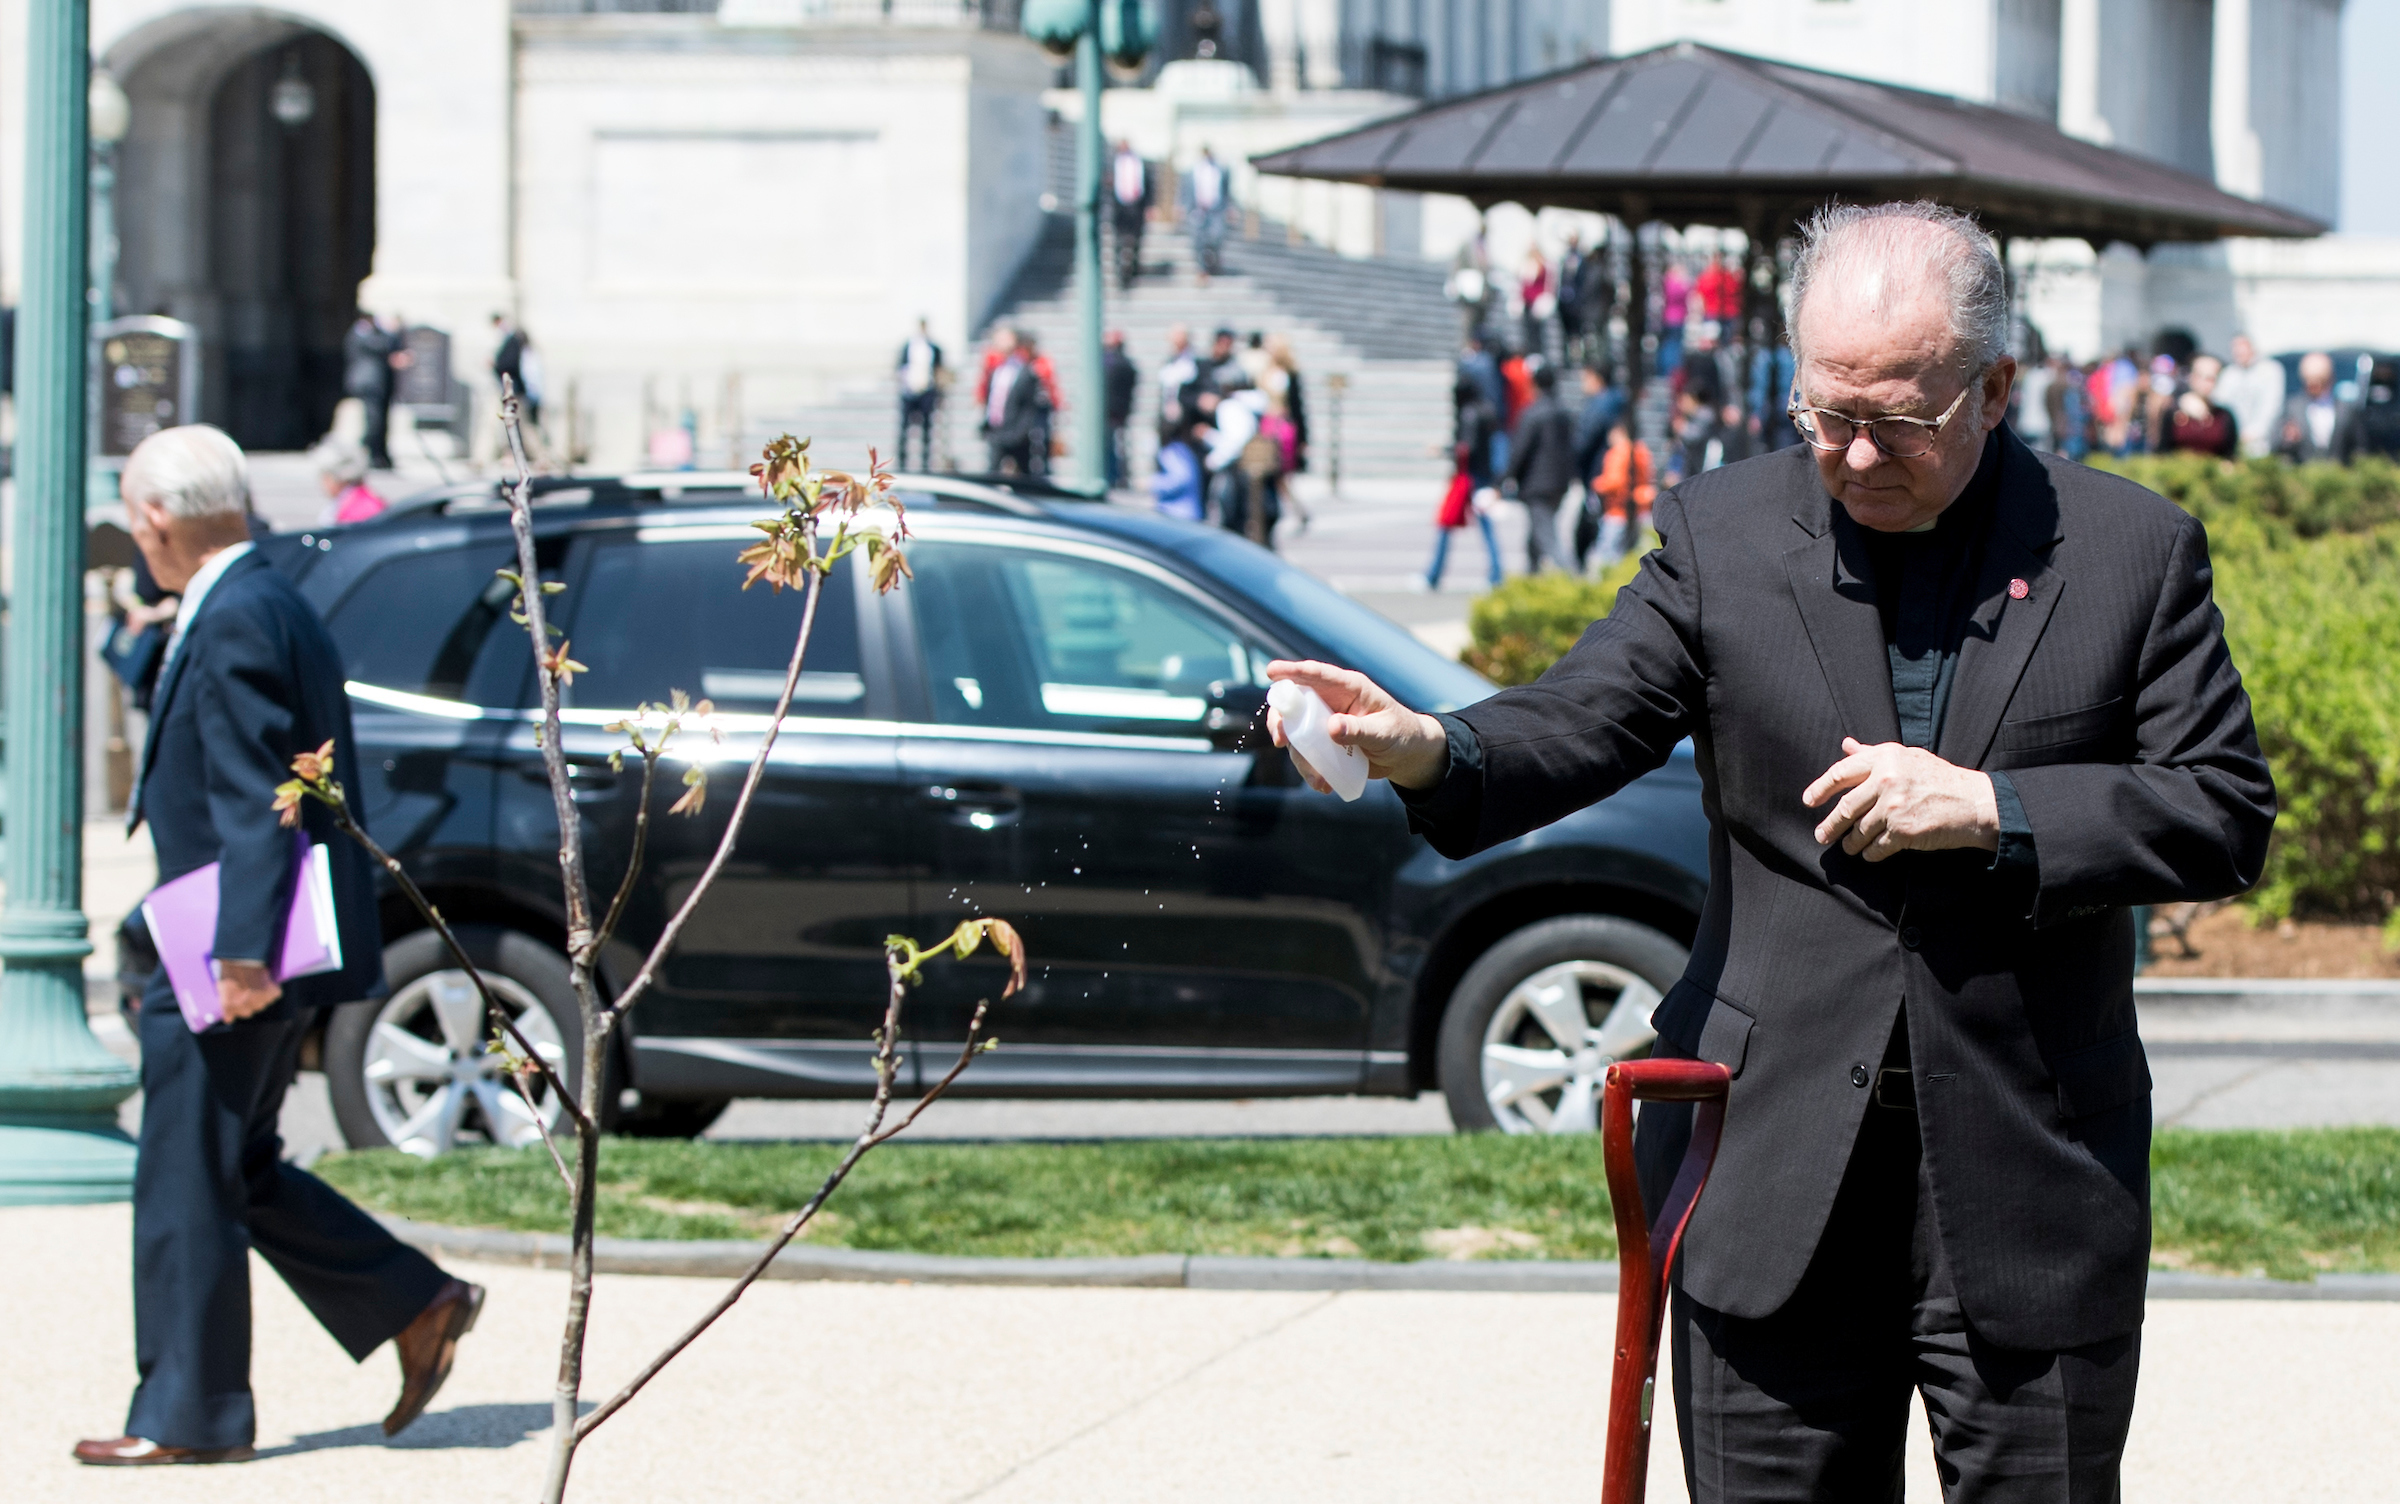 UNITED STATES - APRIL 18: Rev. Patrick J. Conroy, chaplain of the U.S. House of Representatives, blesses the walnut tree during the tree planting ceremony in memory of Rep. Louise Slaughter, D-N.Y., on Wednesday, April 18, 2018. (Photo By Bill Clark/CQ Roll Call)